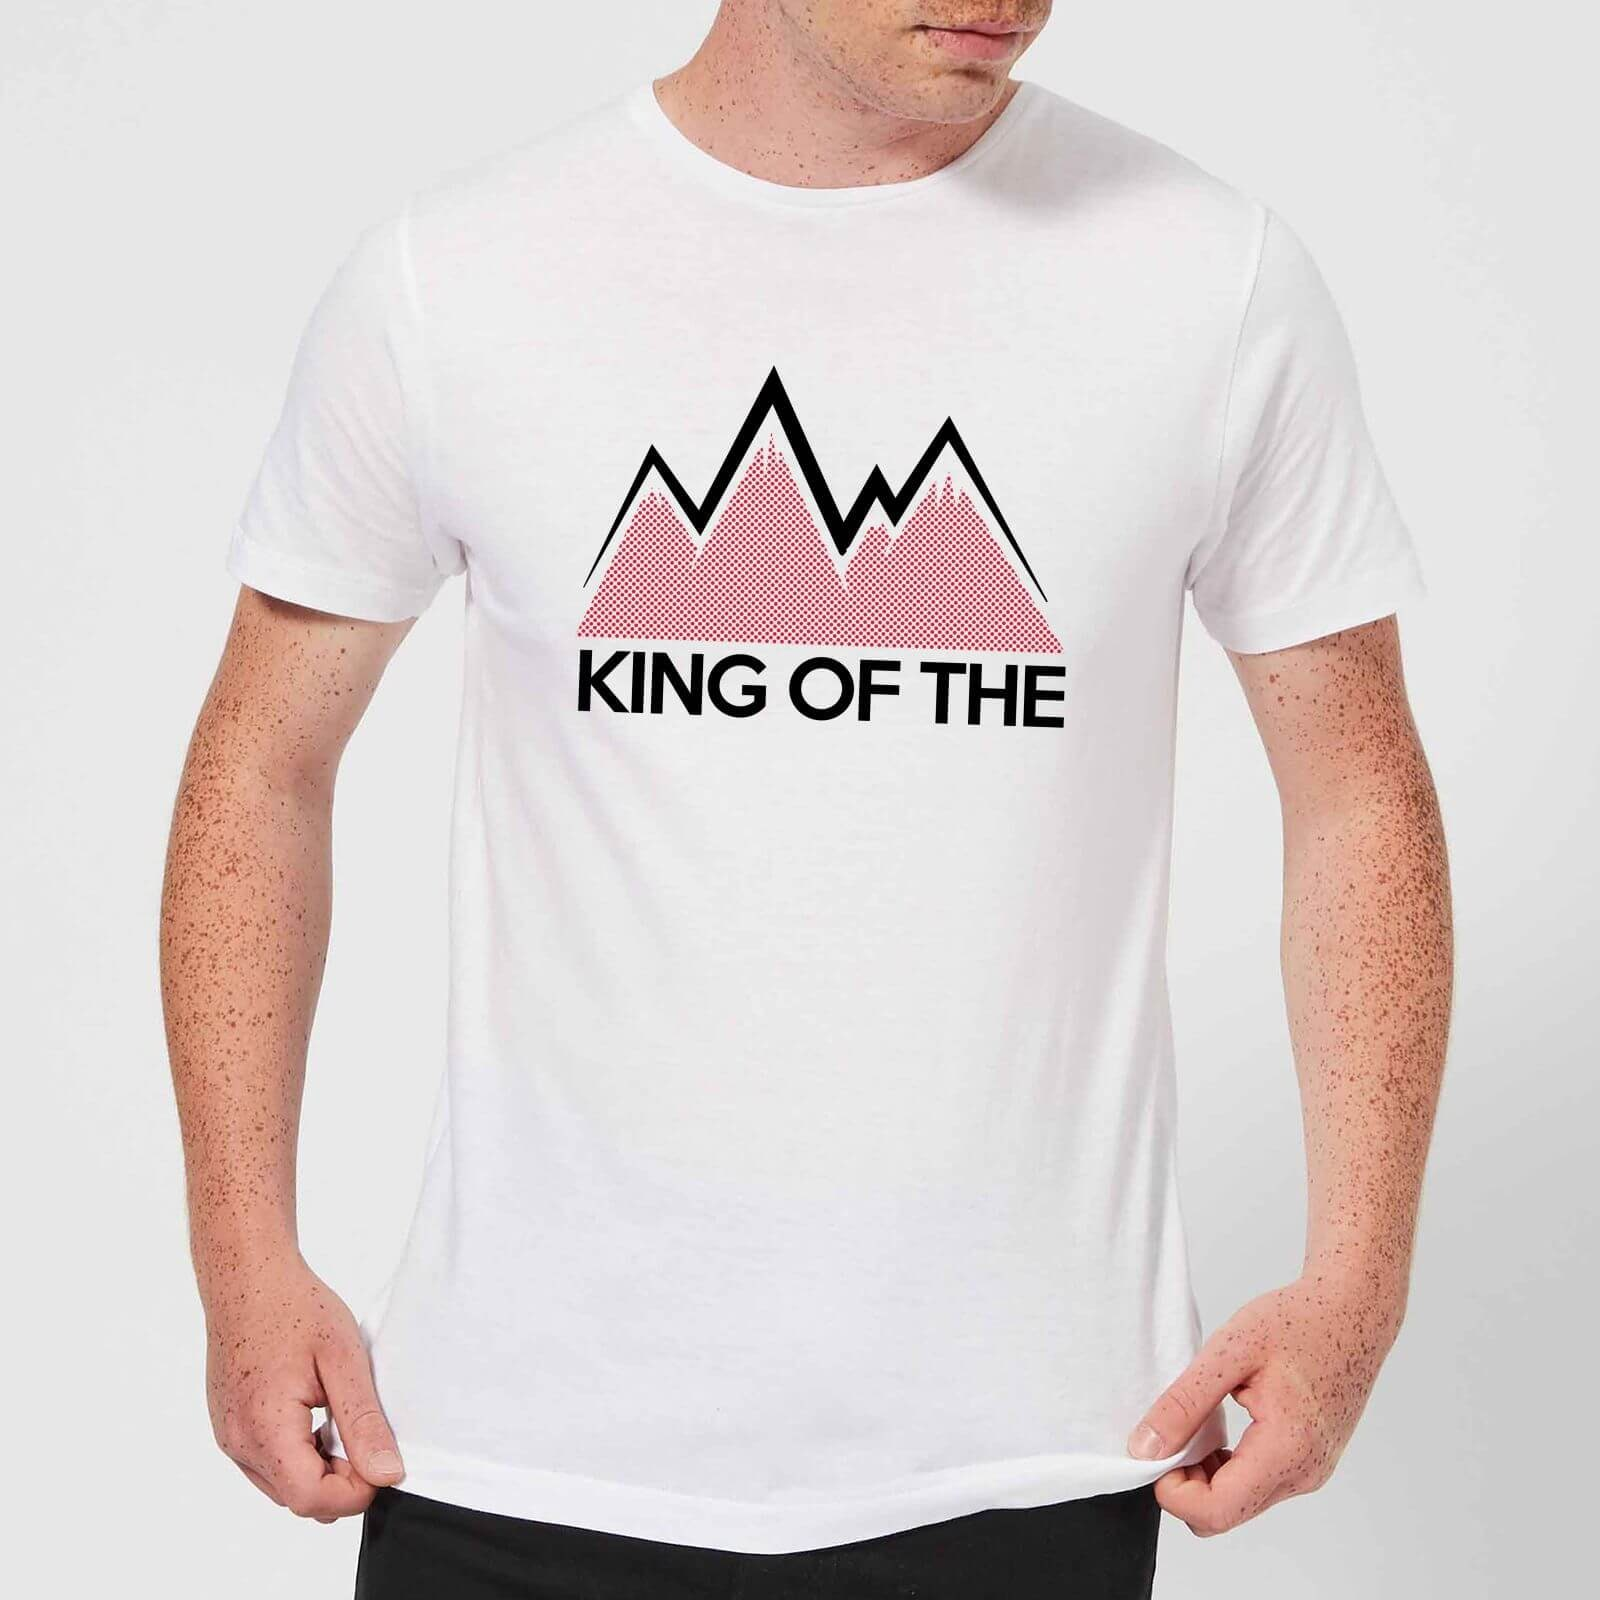 8c44e685c Cycling T-Shirt King of the Mountains Cycling Gifts